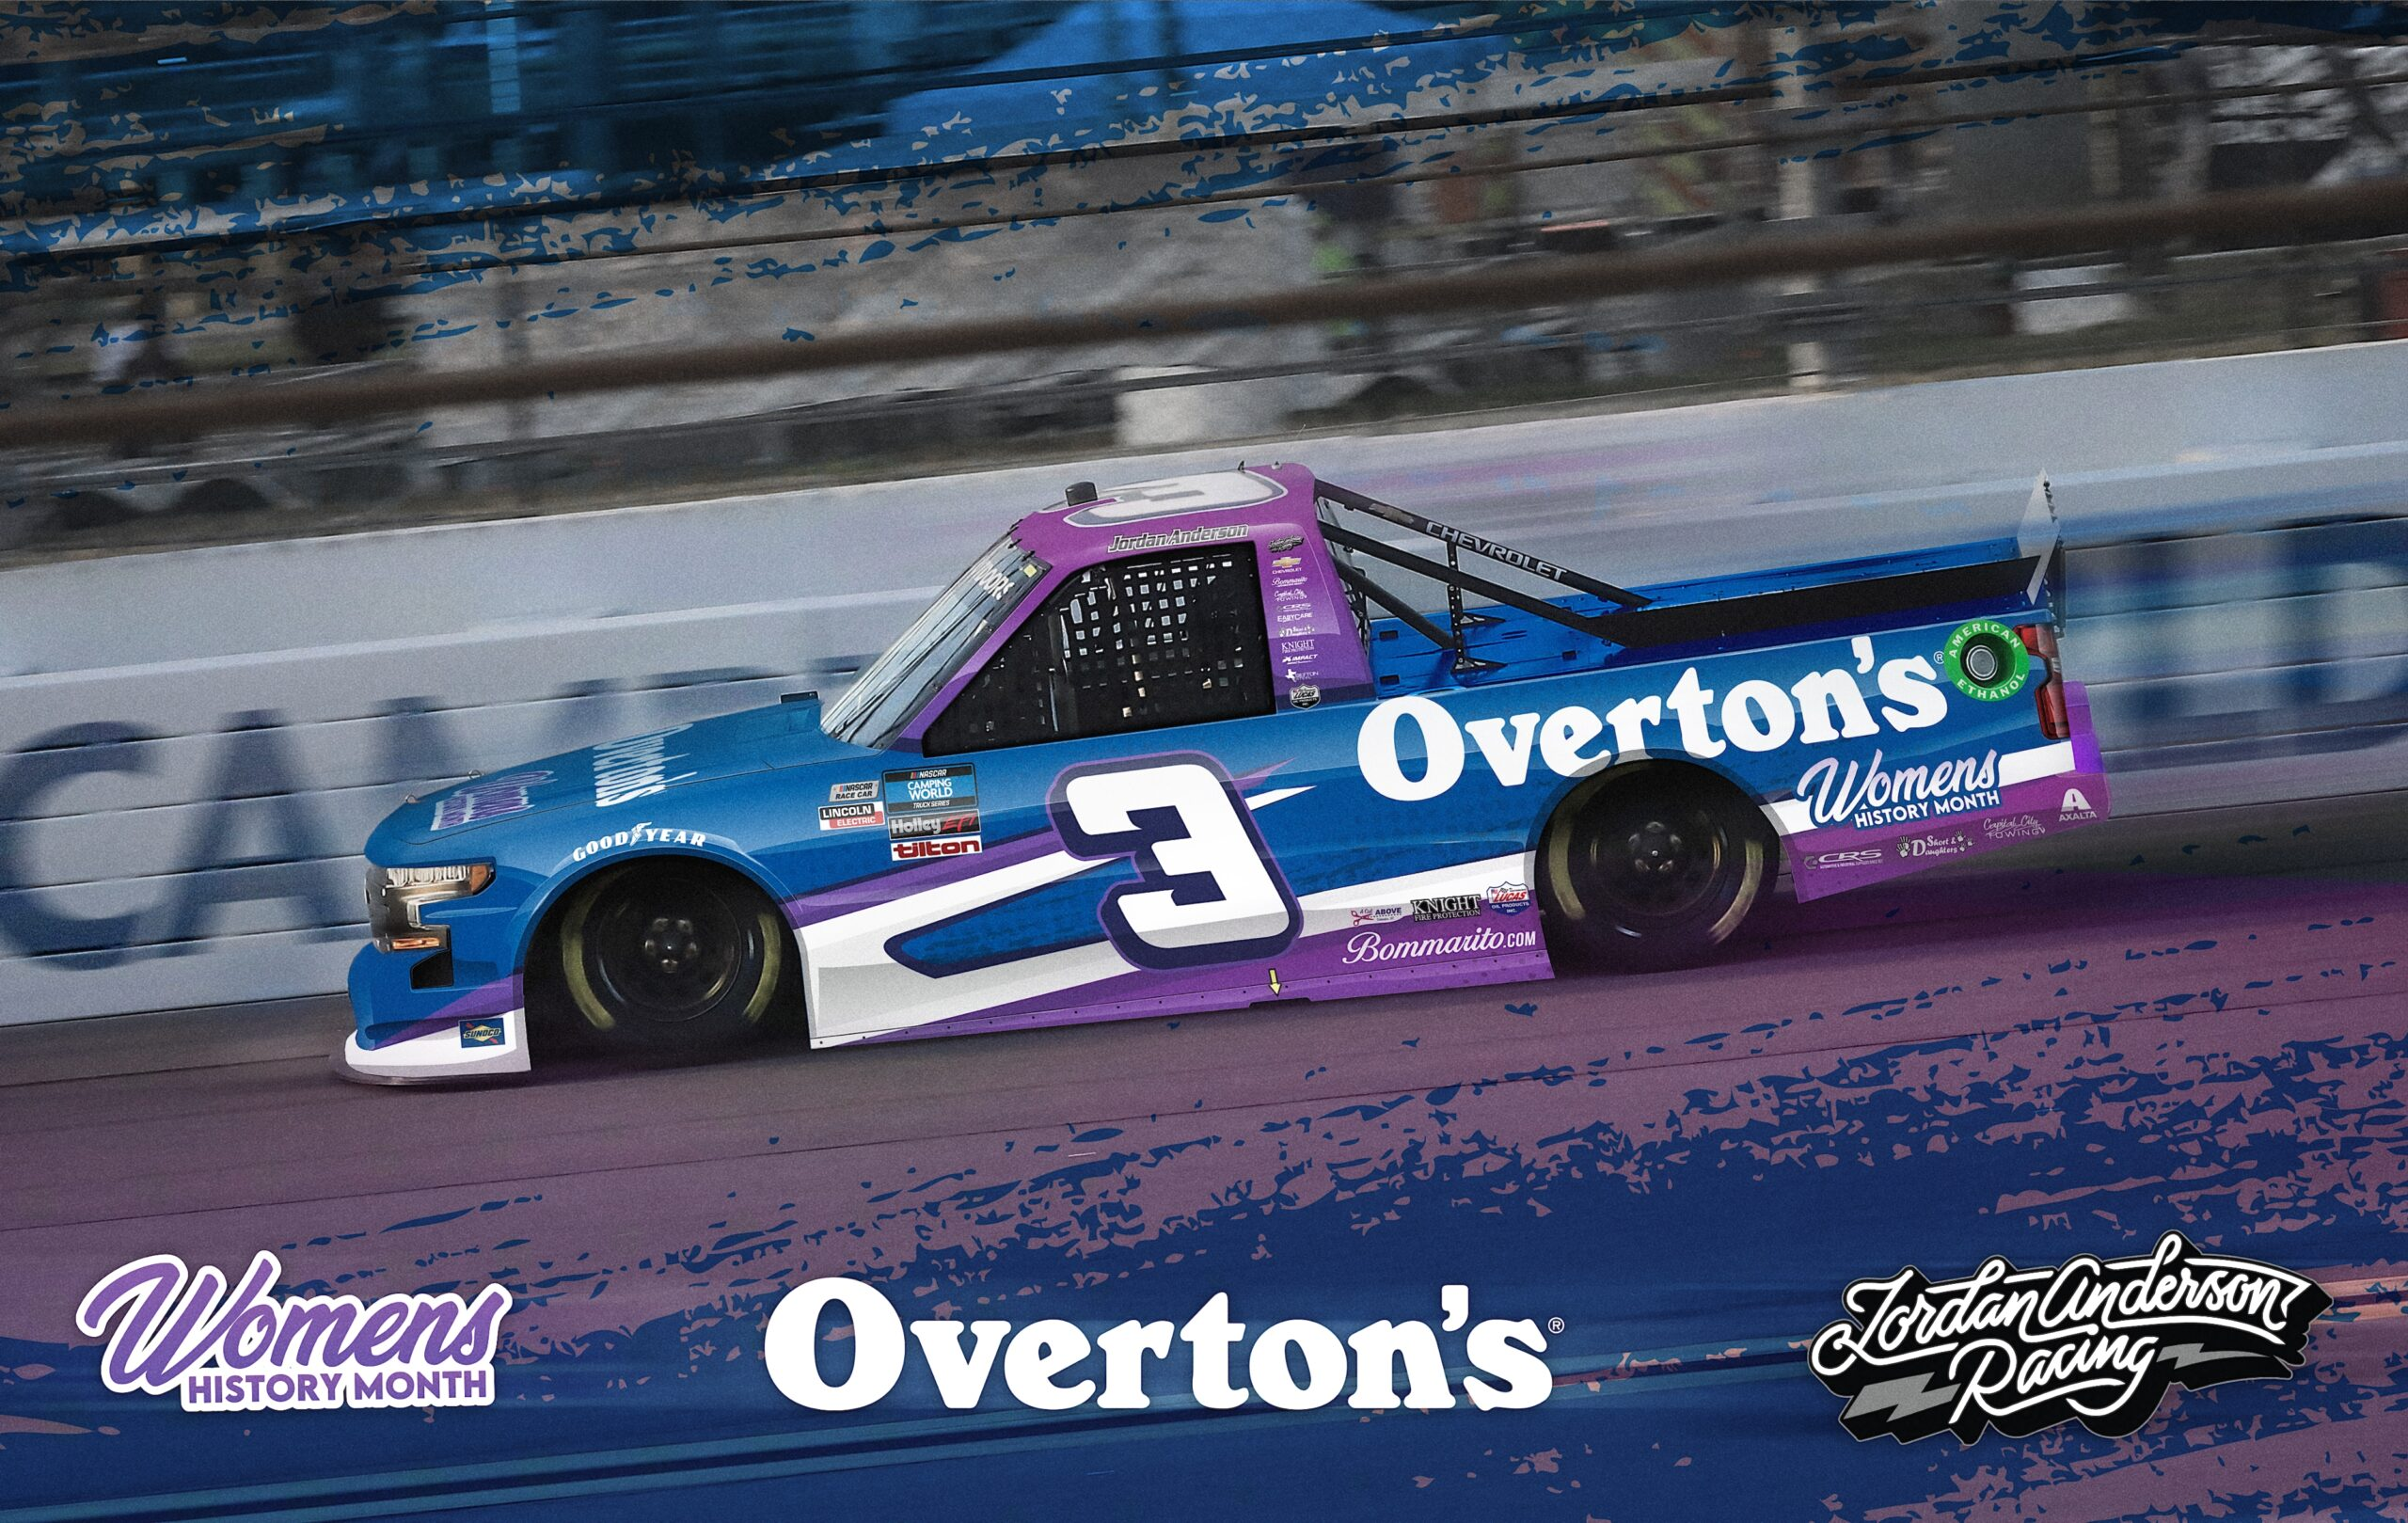 In a Celebration of Woman's History Month Overton's Partner with Jordan Anderson Racing for Atlanta Truck Race